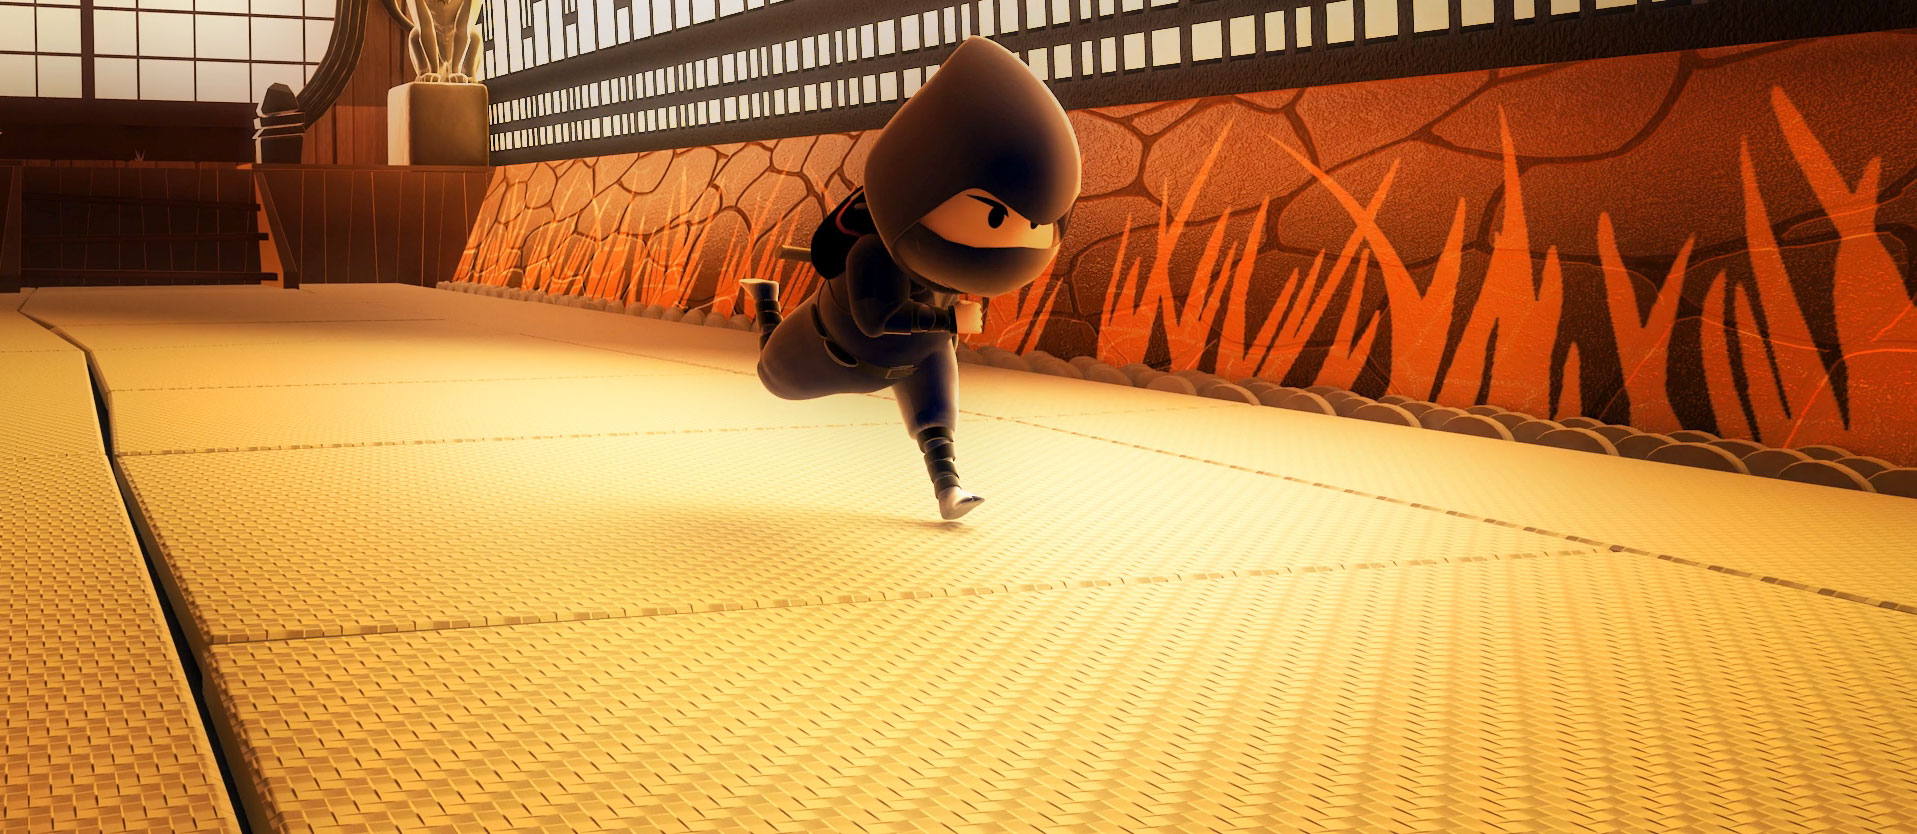 Ninjaaa (Animation 3D Cartoon)